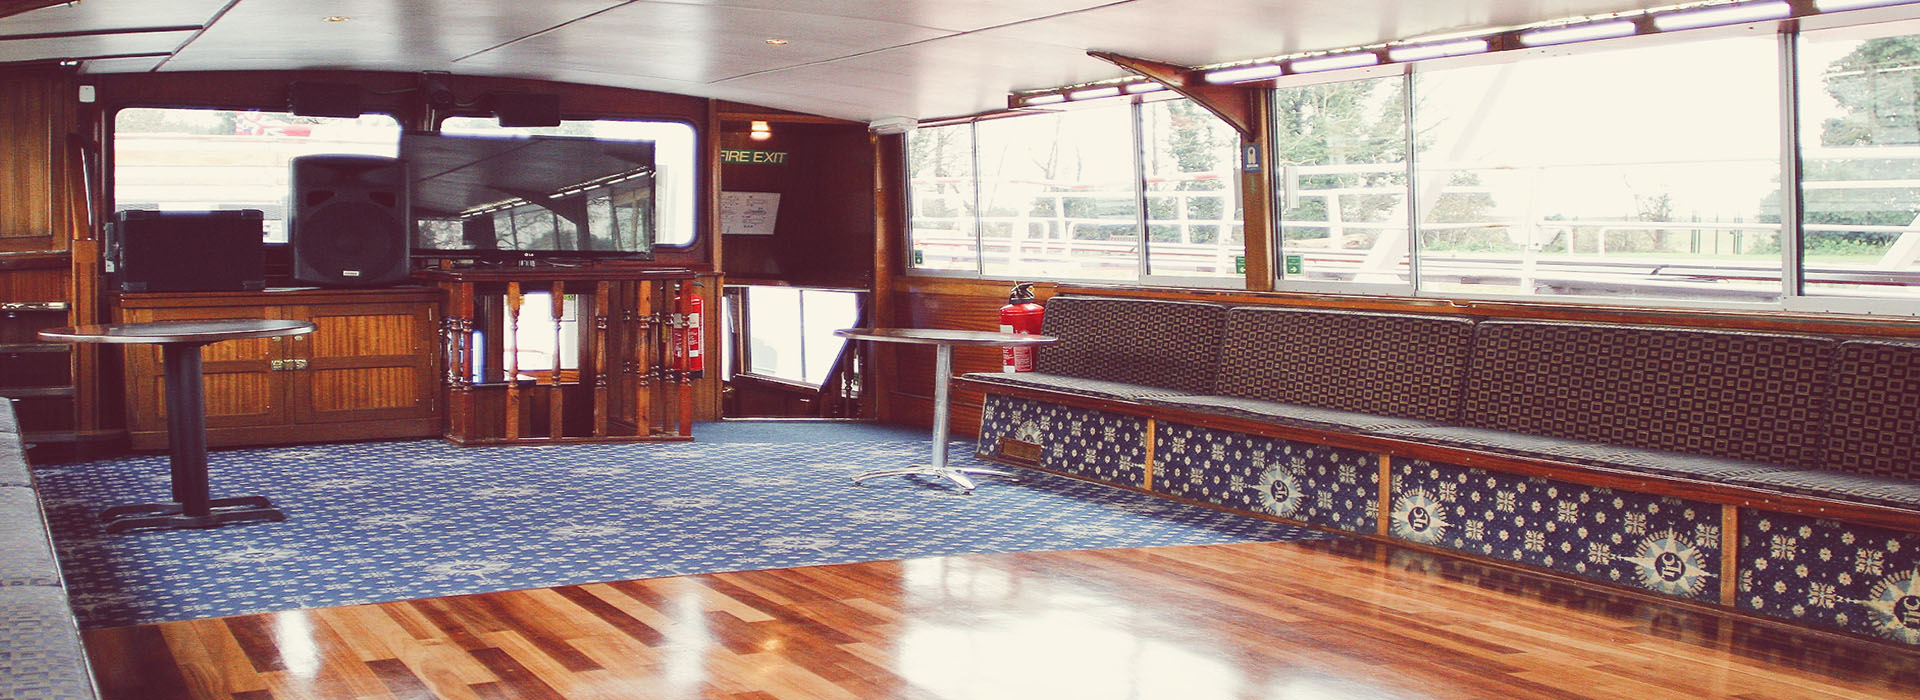 Thames Voyager Boat - Corporate & Party Boat Hire on the River Thames in London.